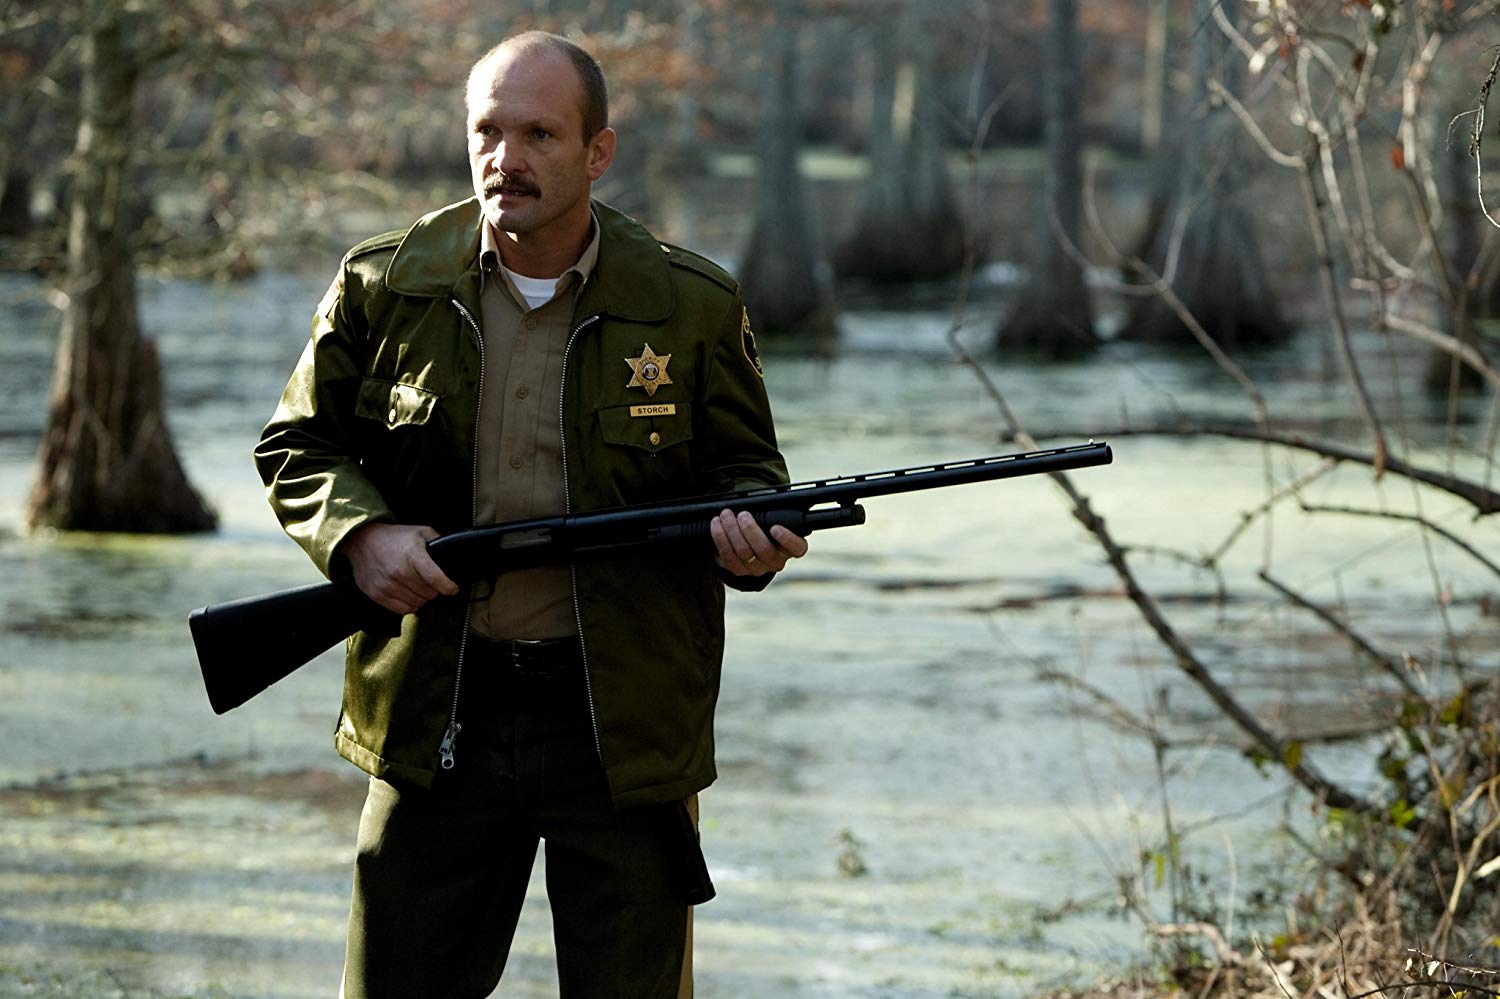 Andrew Howard as the sheriff in I Spit on Your Grave (2010)